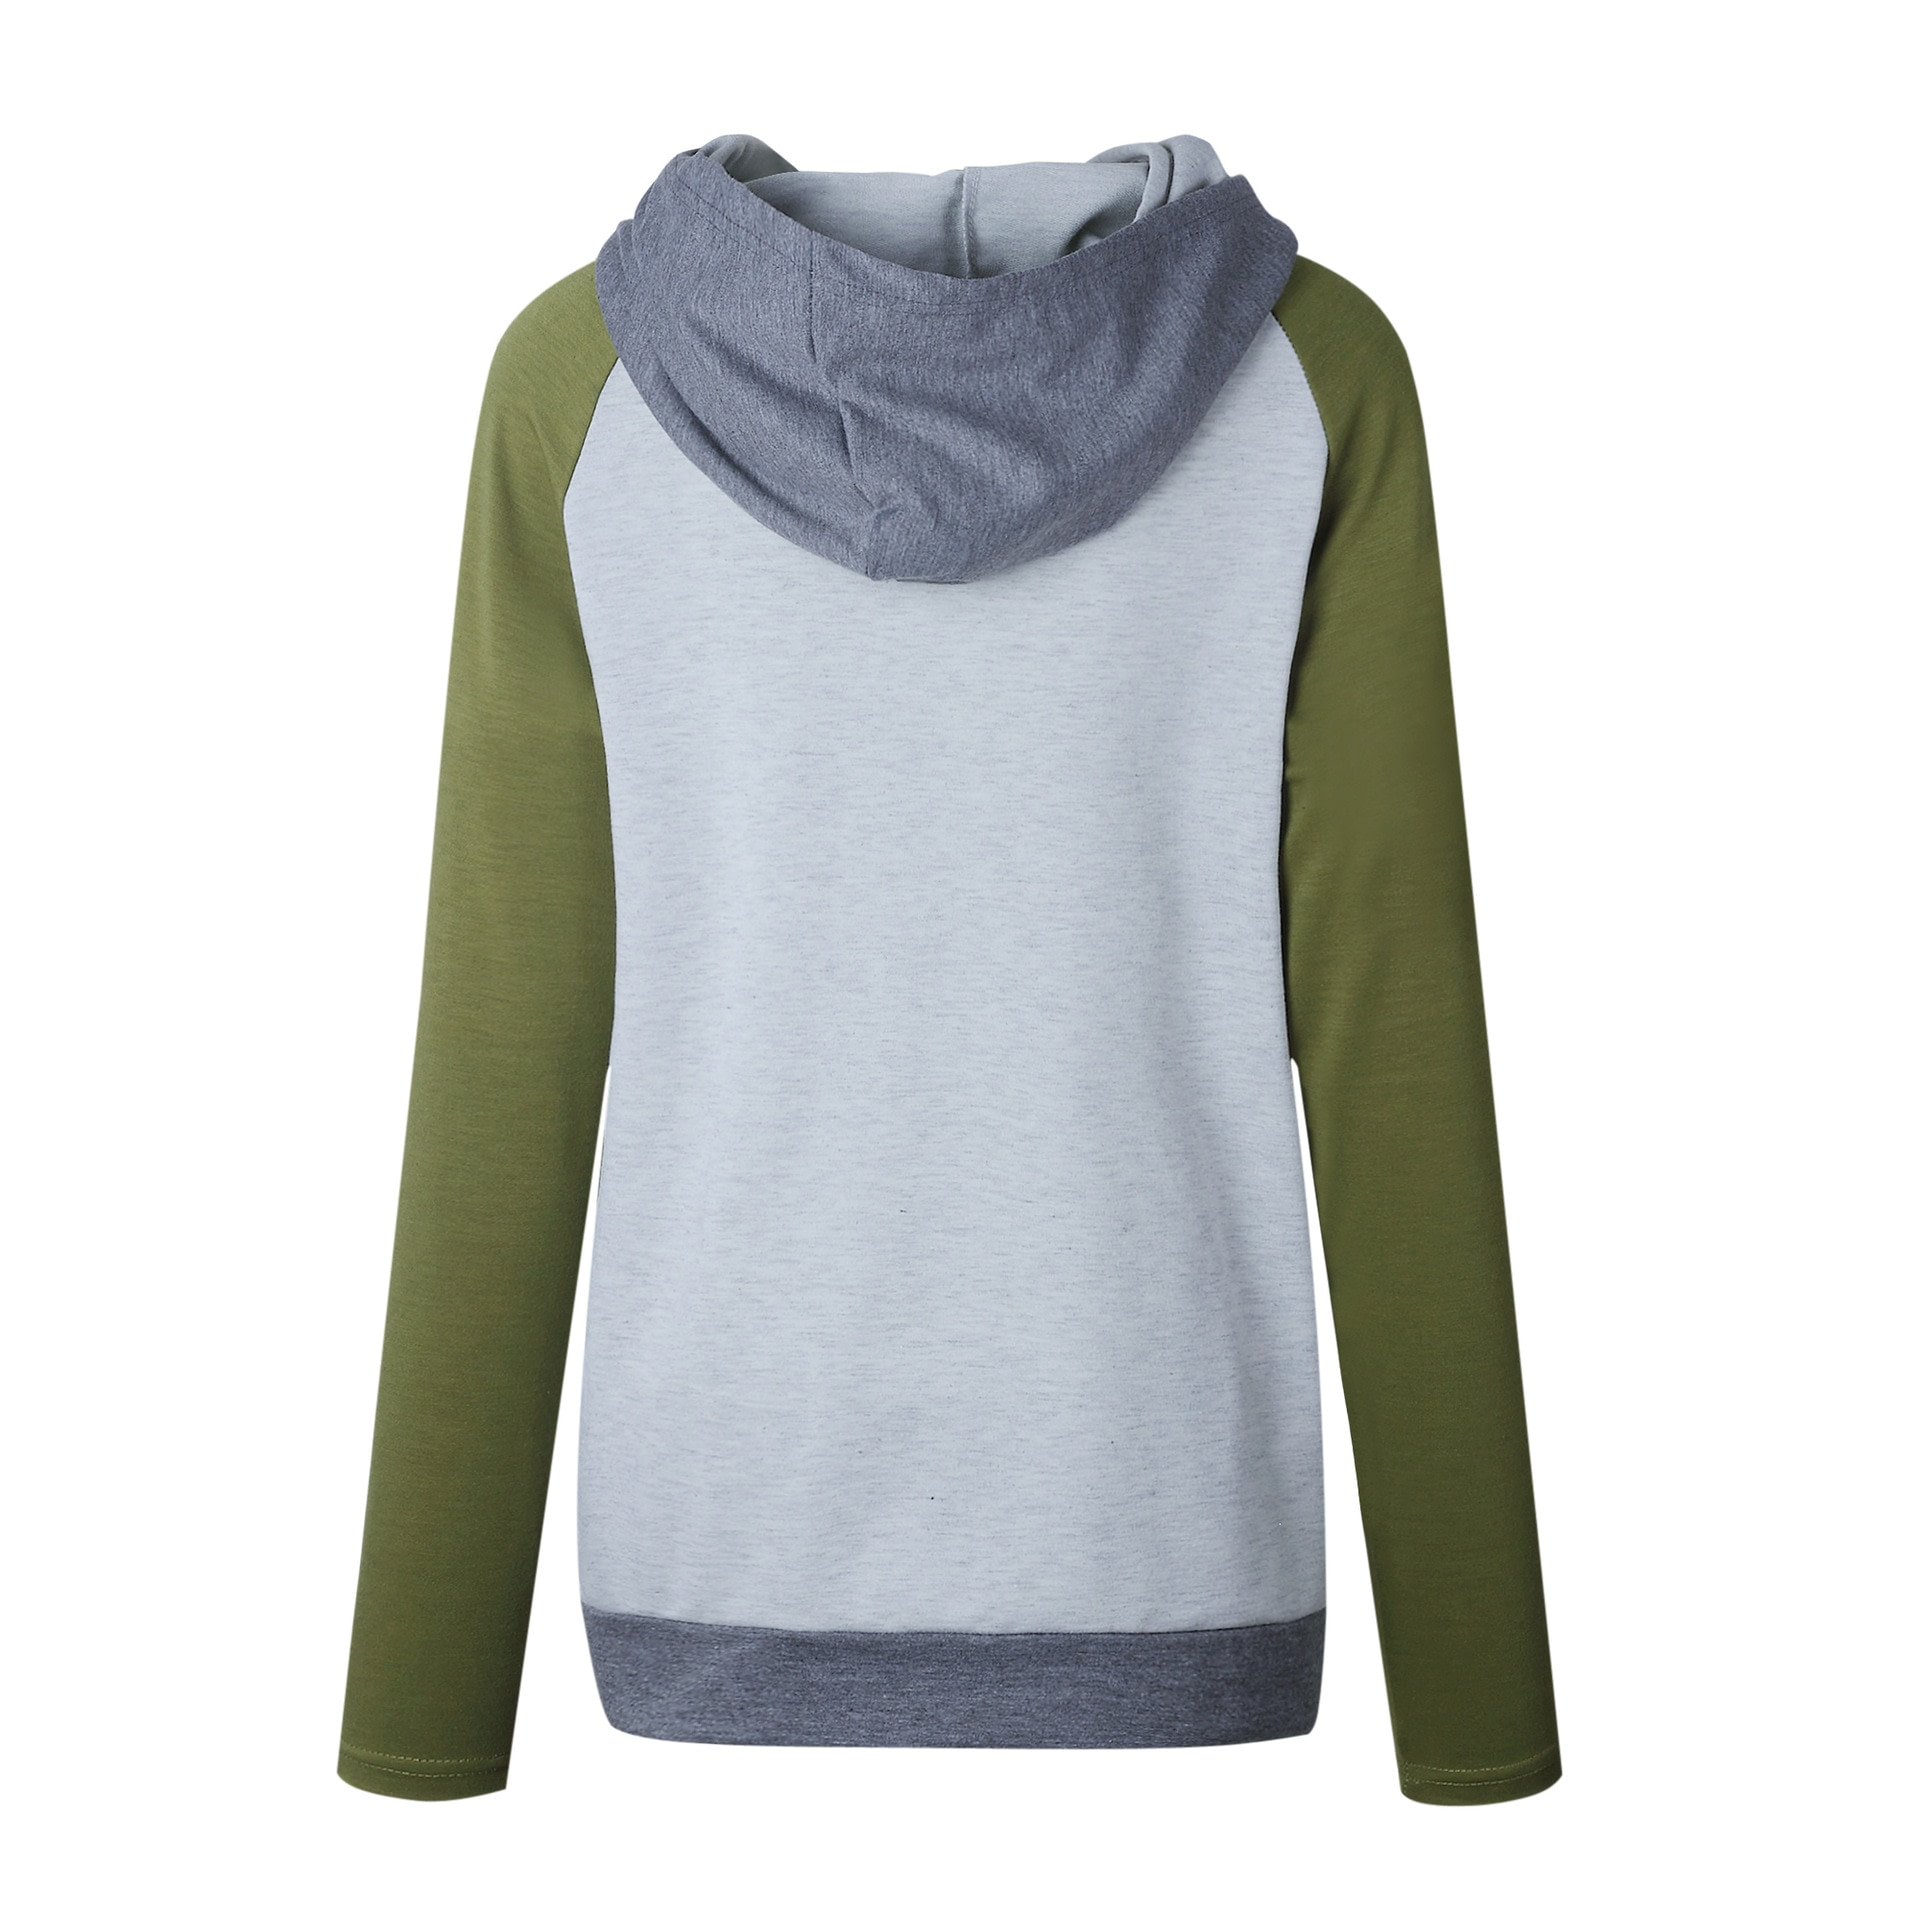 Women's Patchwork Striped Pullover Long Sleeve Hoodie, Tops With Pockets, Hooded Sweatshirt 54